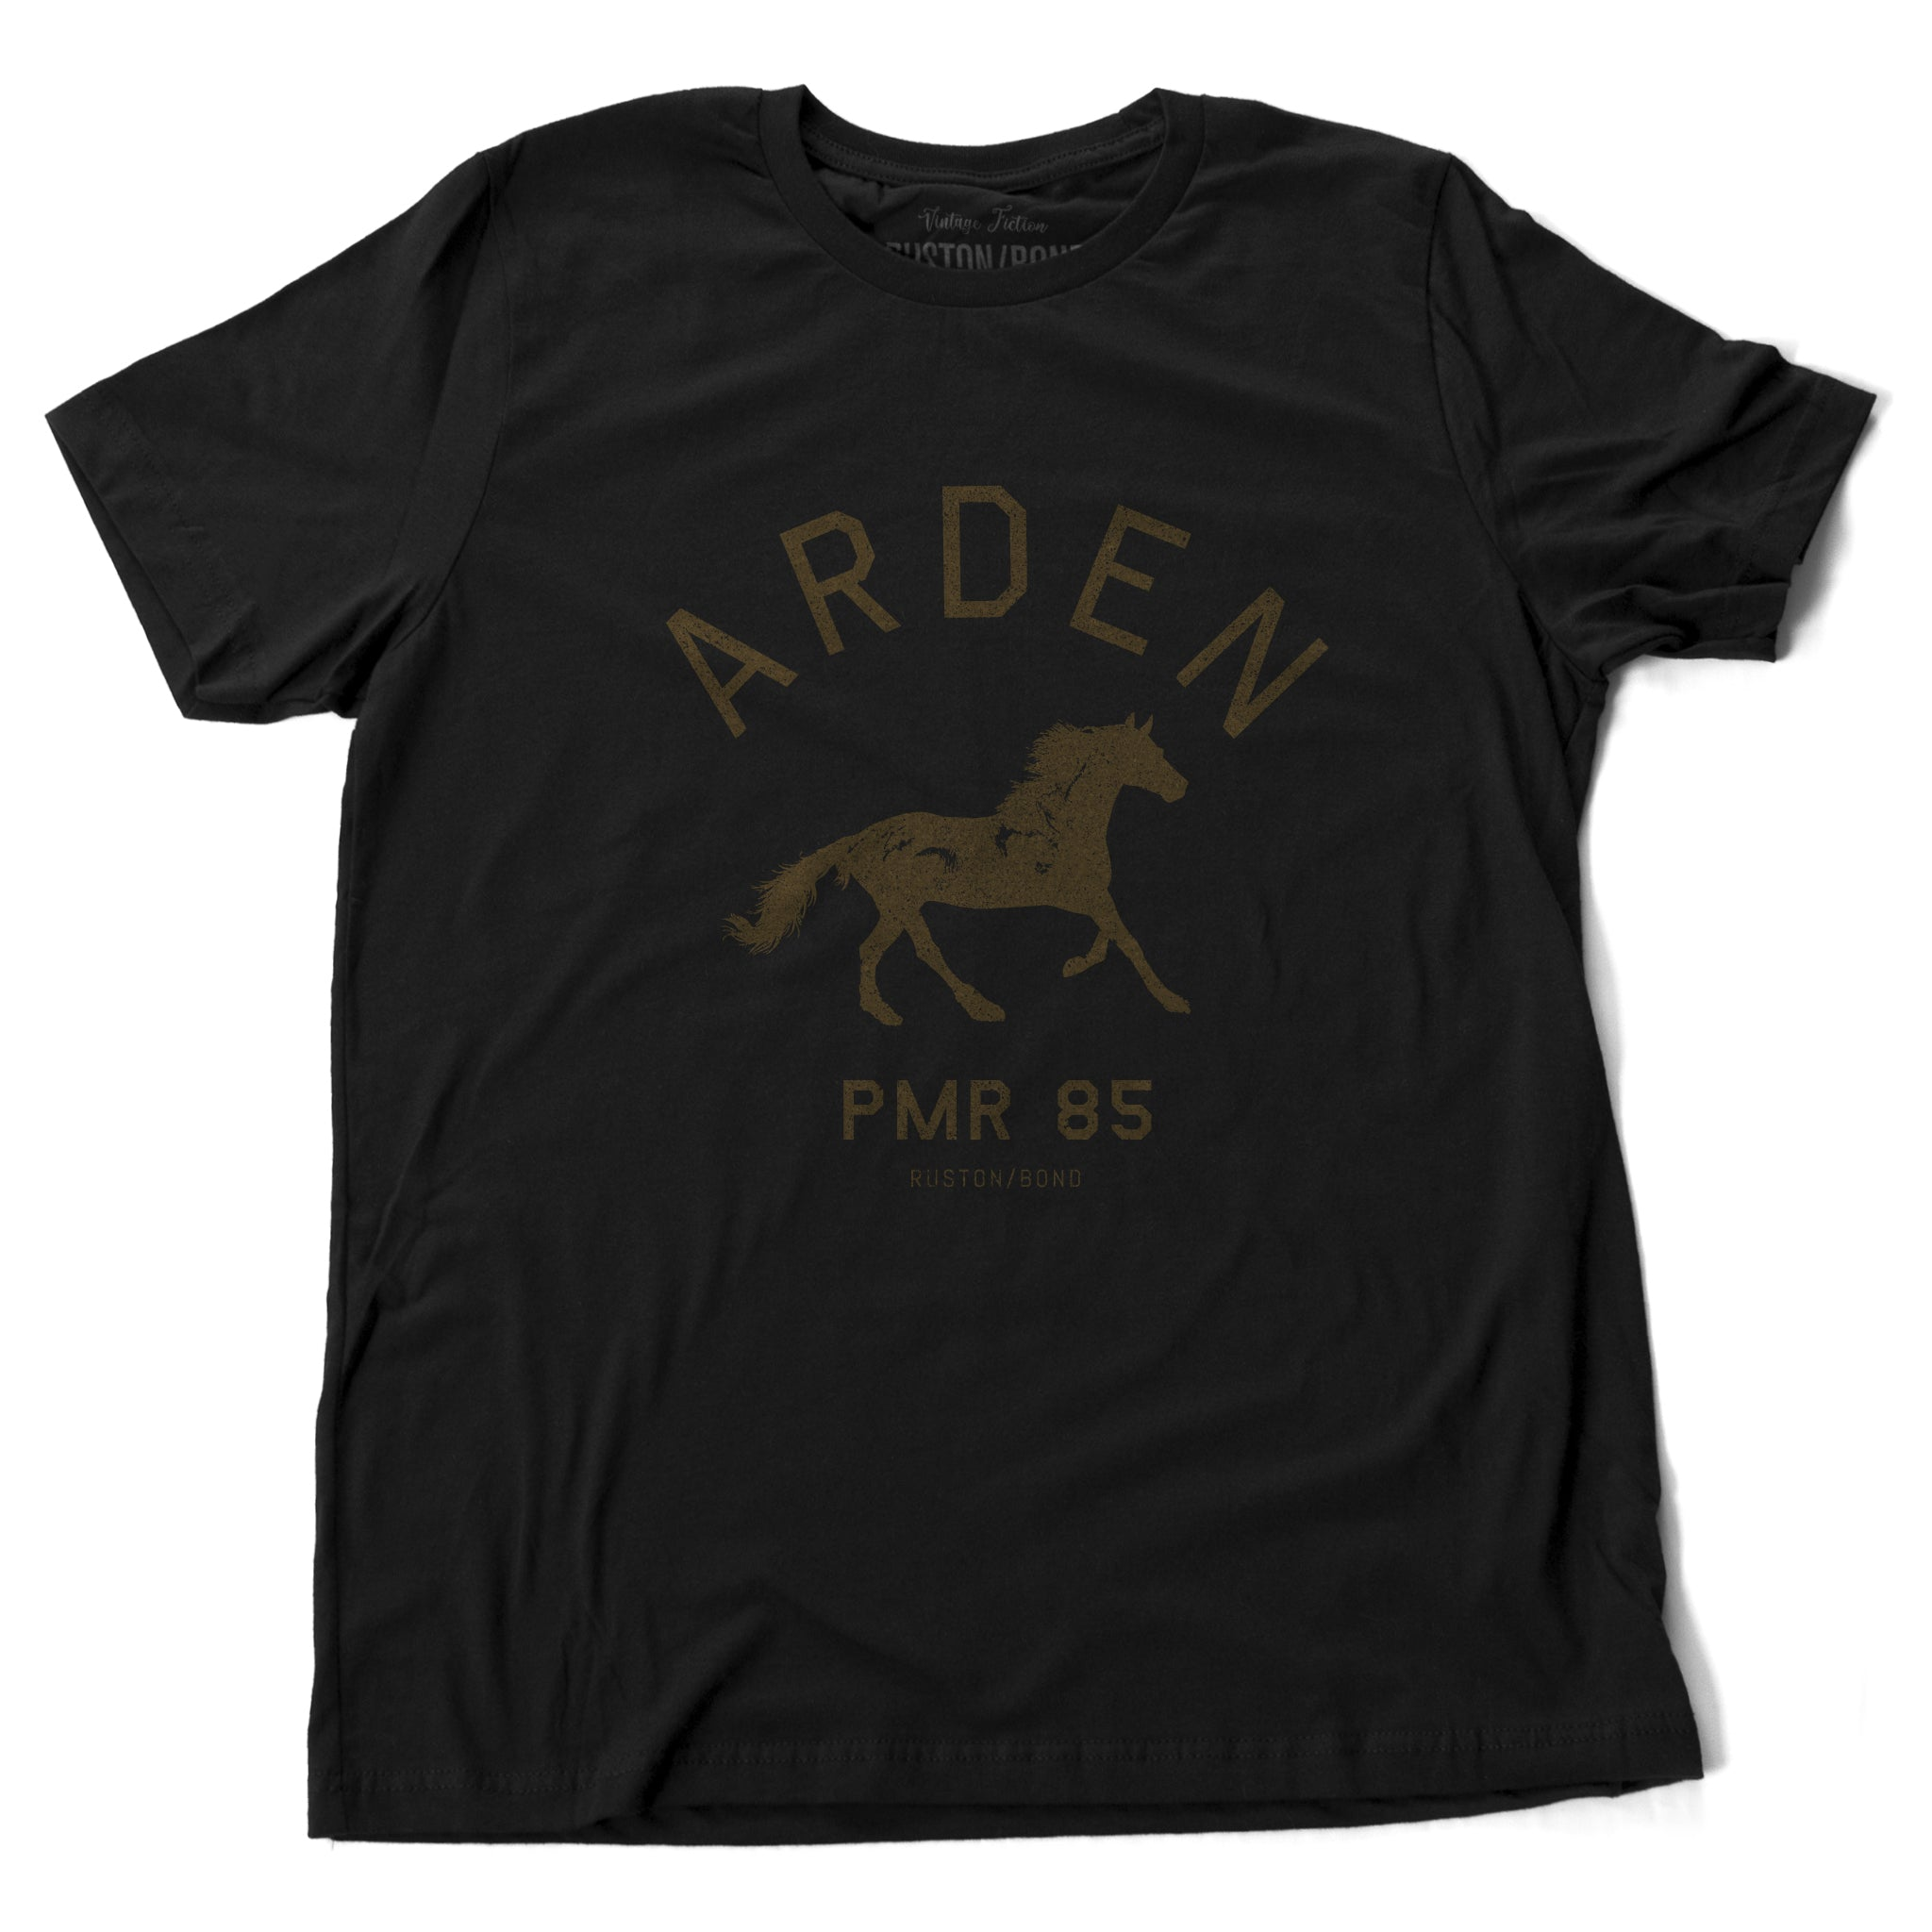 Black vintage, retro-inspired fashion t-shirt, with elegant classic typography and a running horse with an equestrian, horse-riding theme. From wolfsaint.net